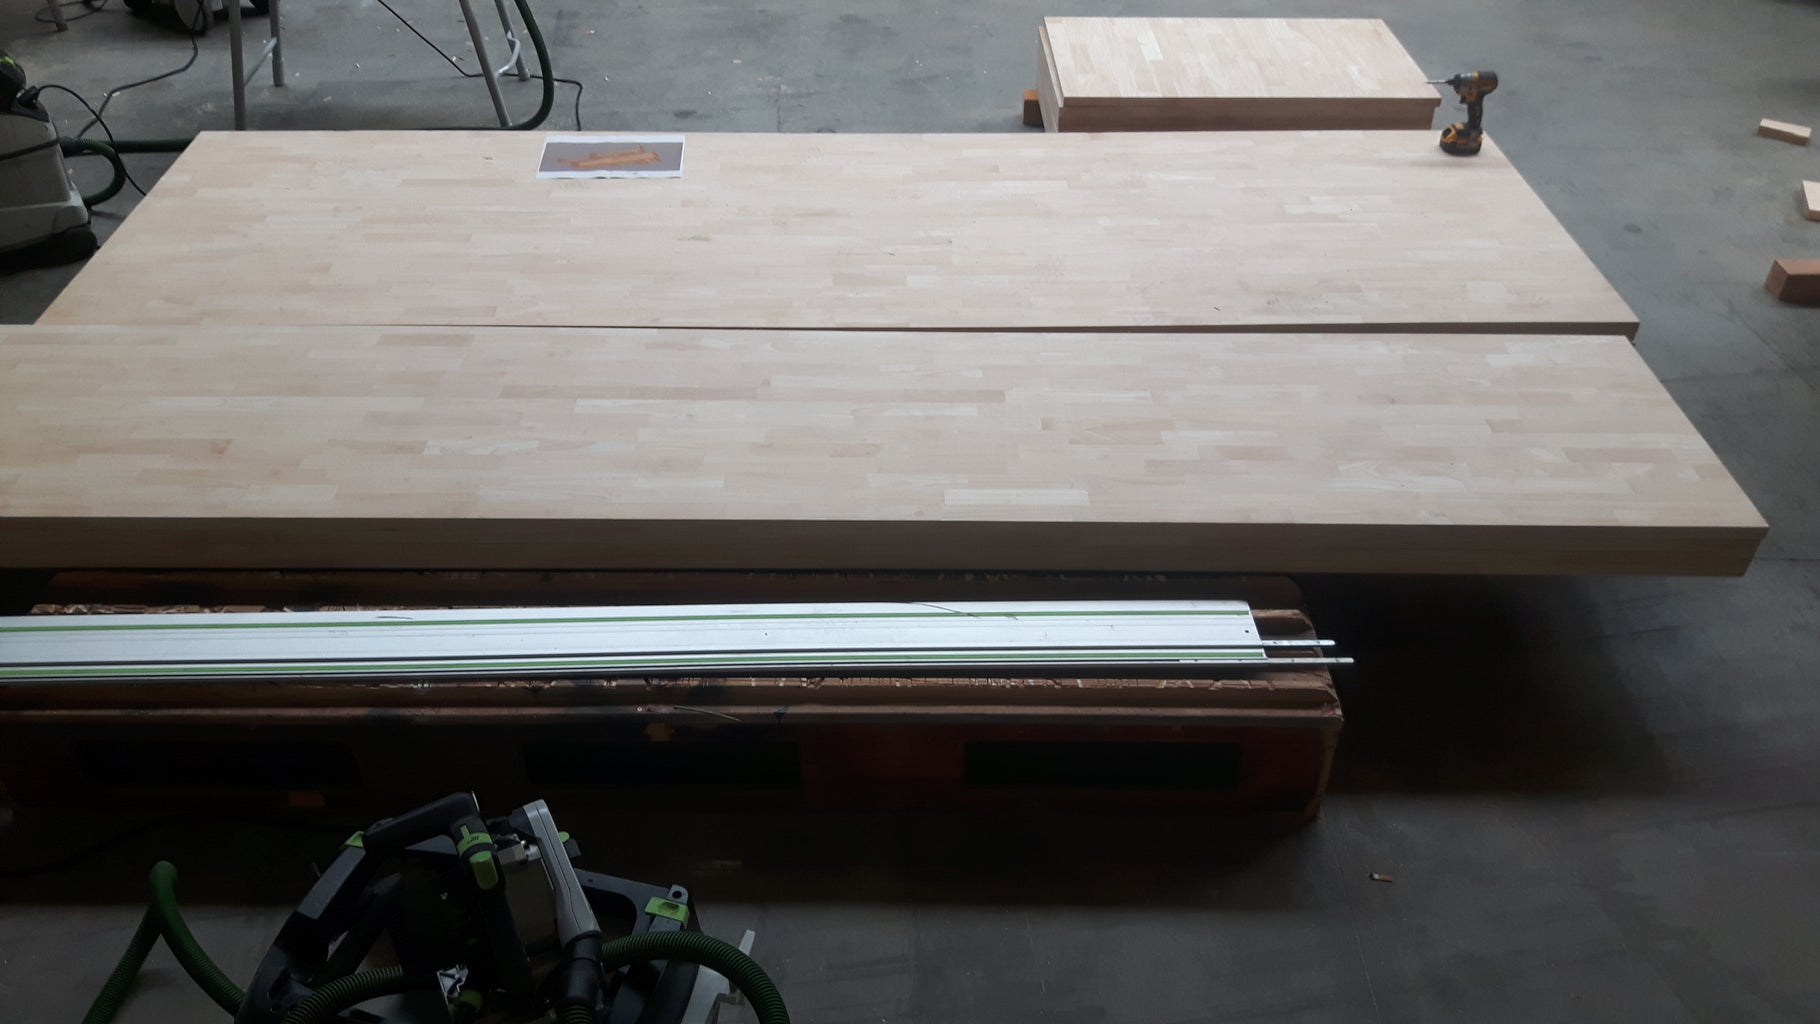 The Tables and Benches